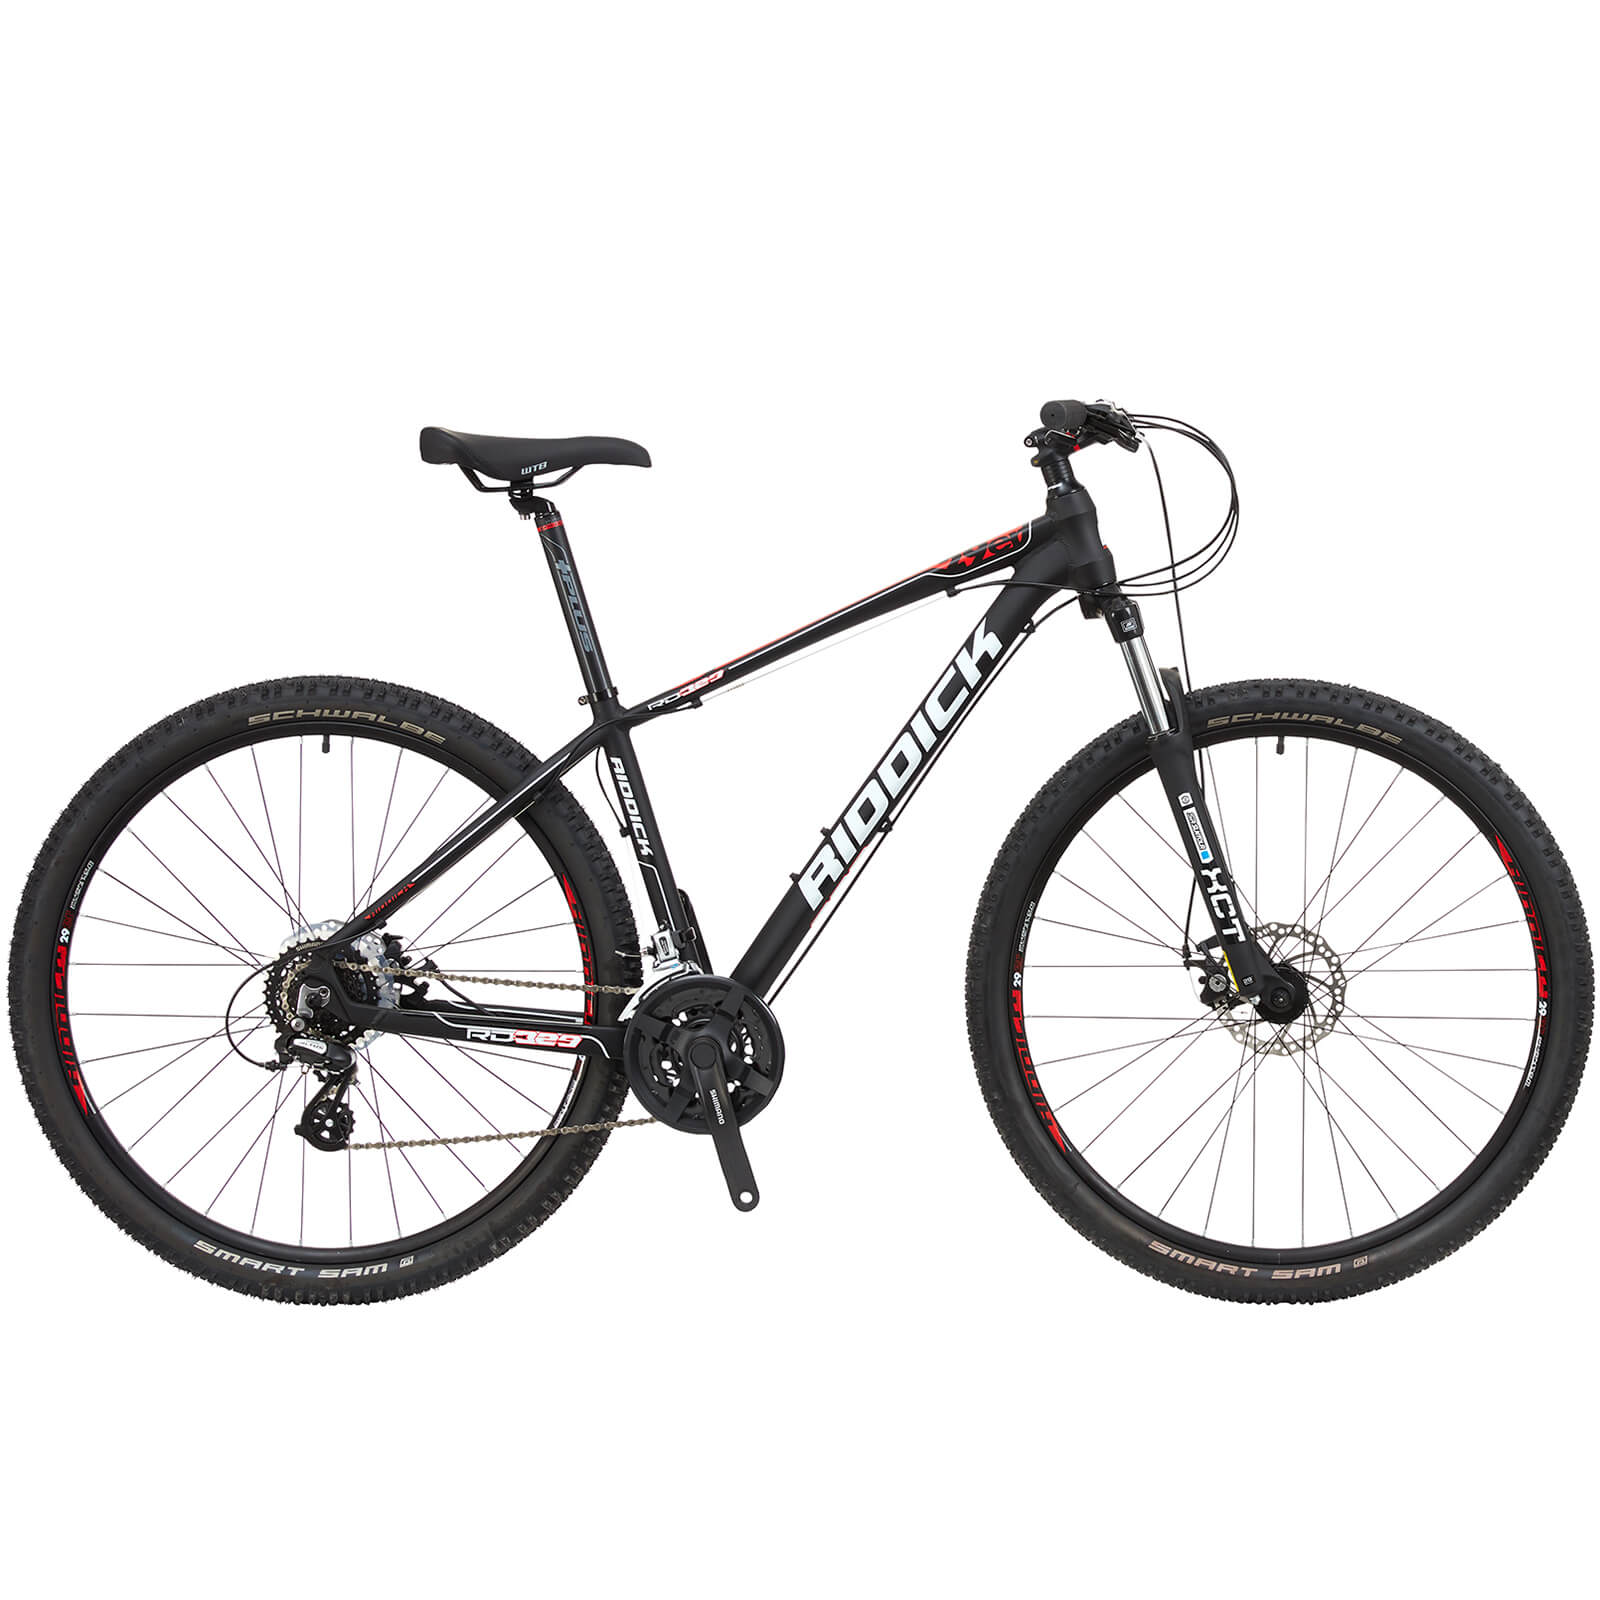 "Riddick RD329 29er Alloy 24 Speed Disc Aluminium Mountain Bike 17"" (RD029)"